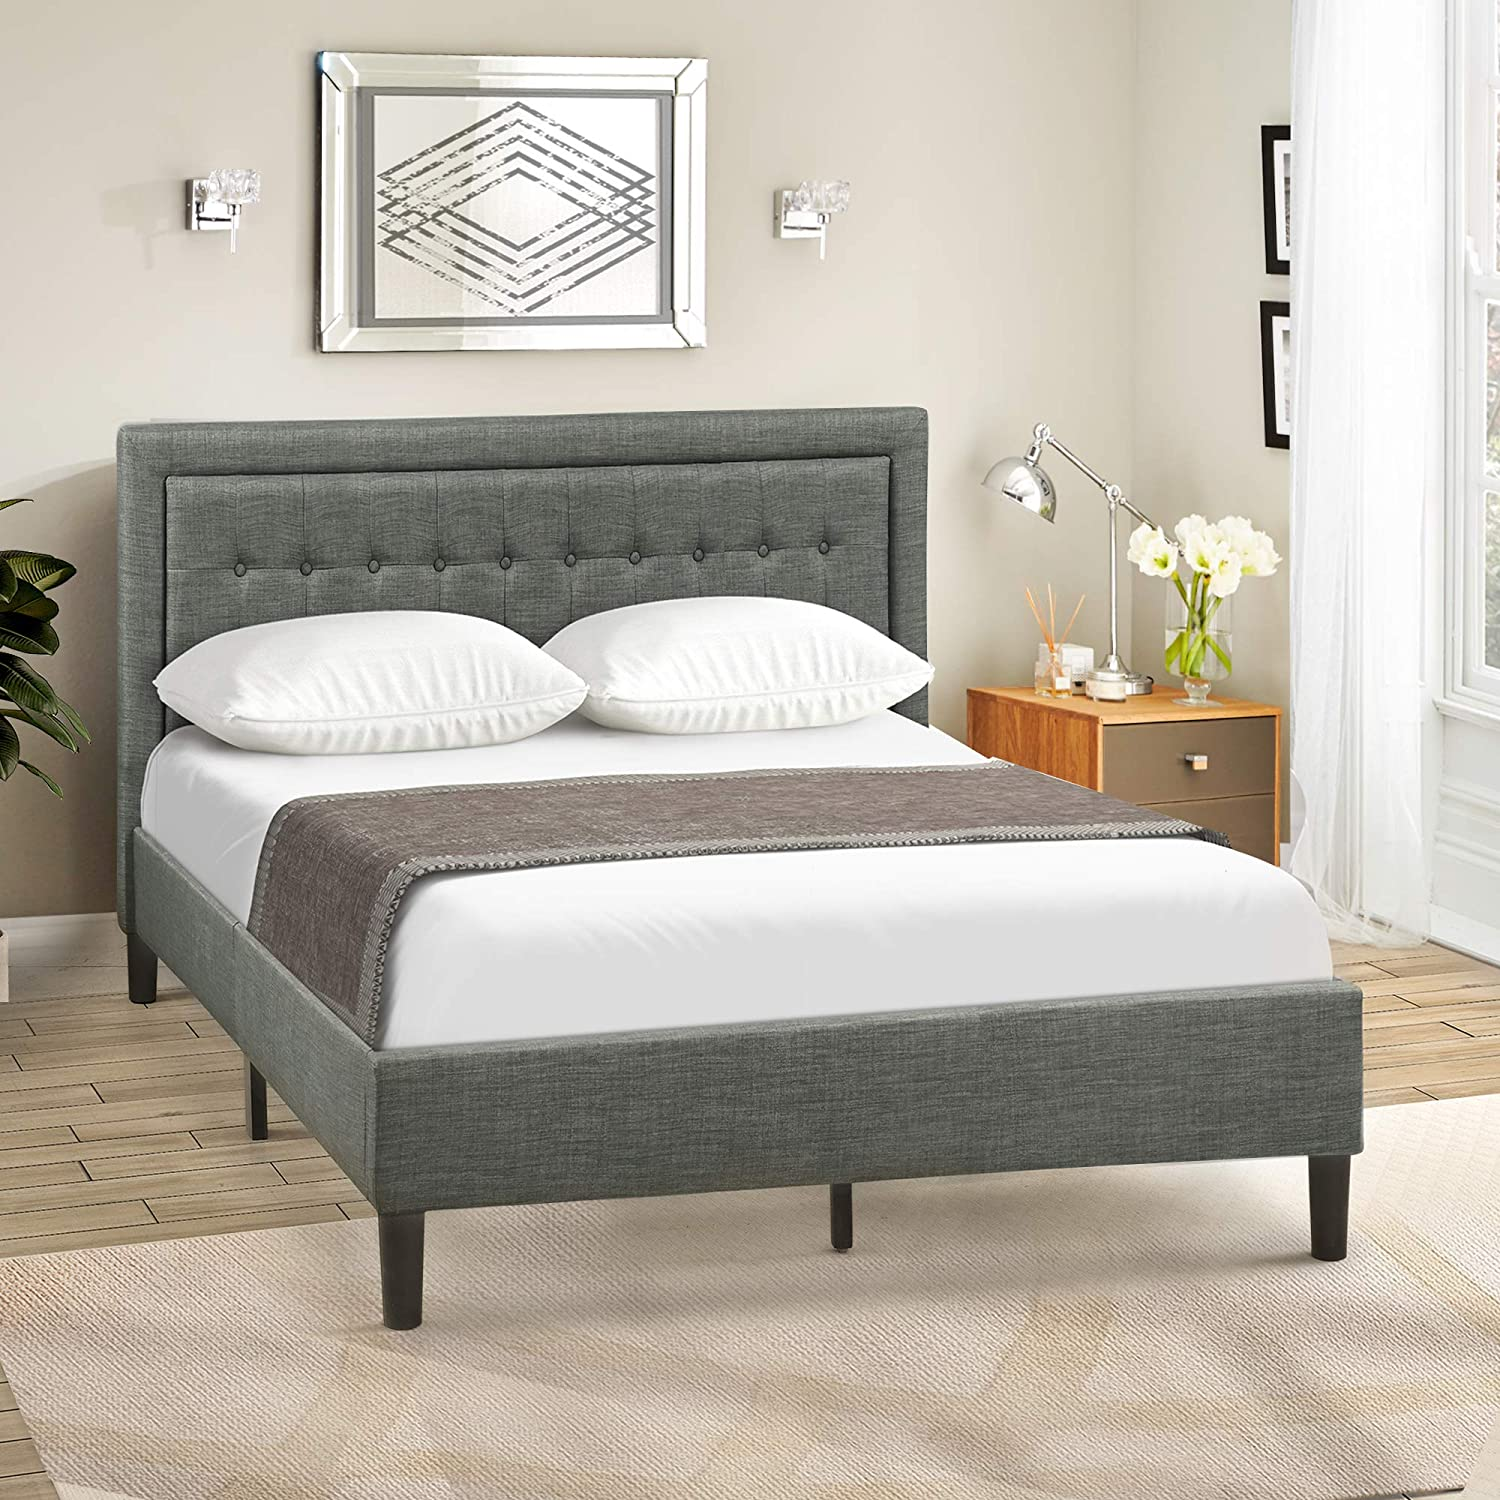 Merax Upholstered Button Tufted Platform Bed with Strong Wood Slat Support Grey-Green, Queen